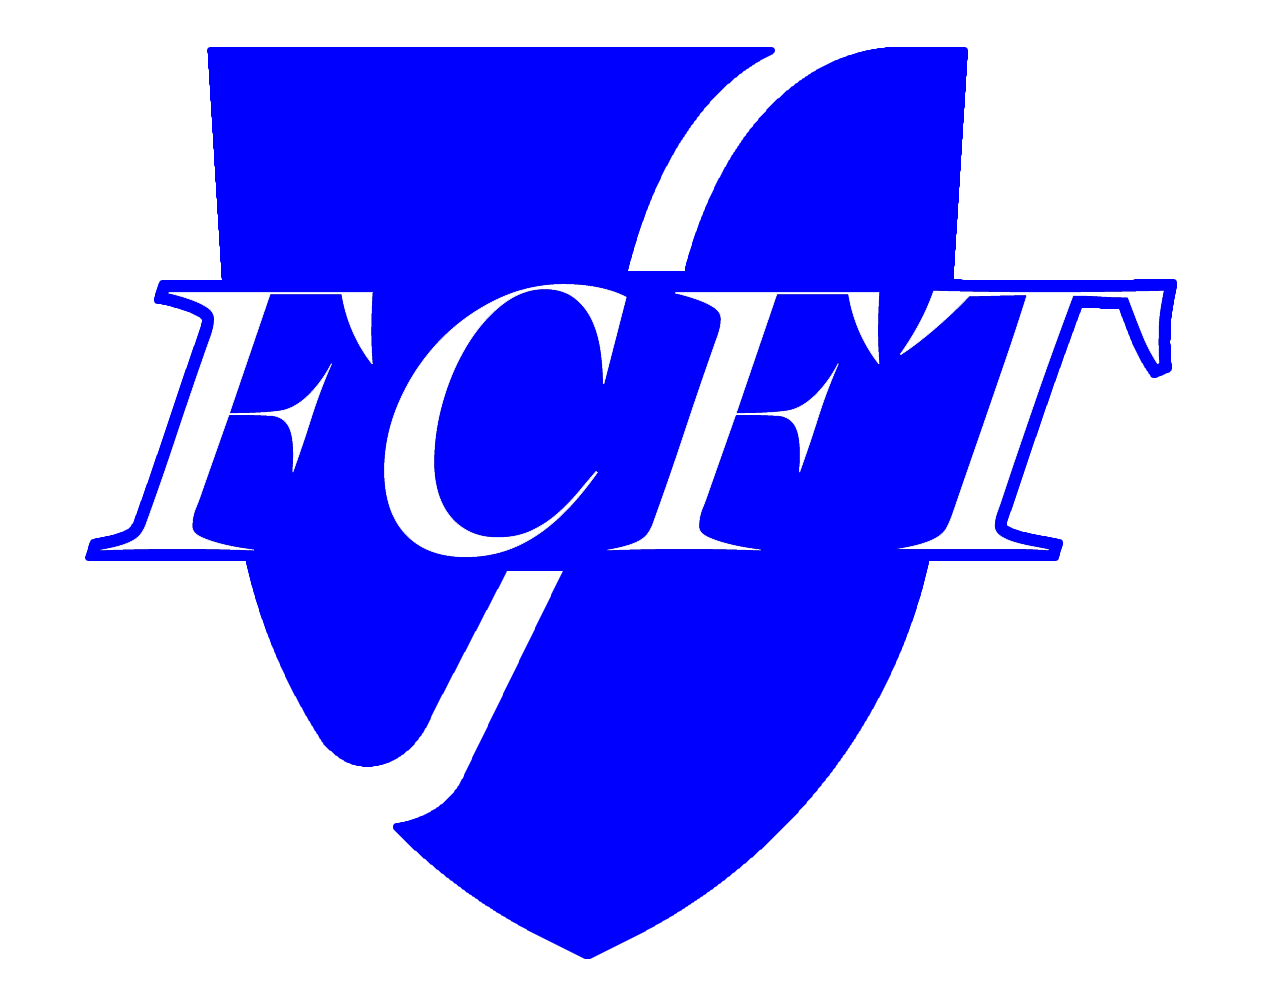 FCFT Blue Updated 2016.png